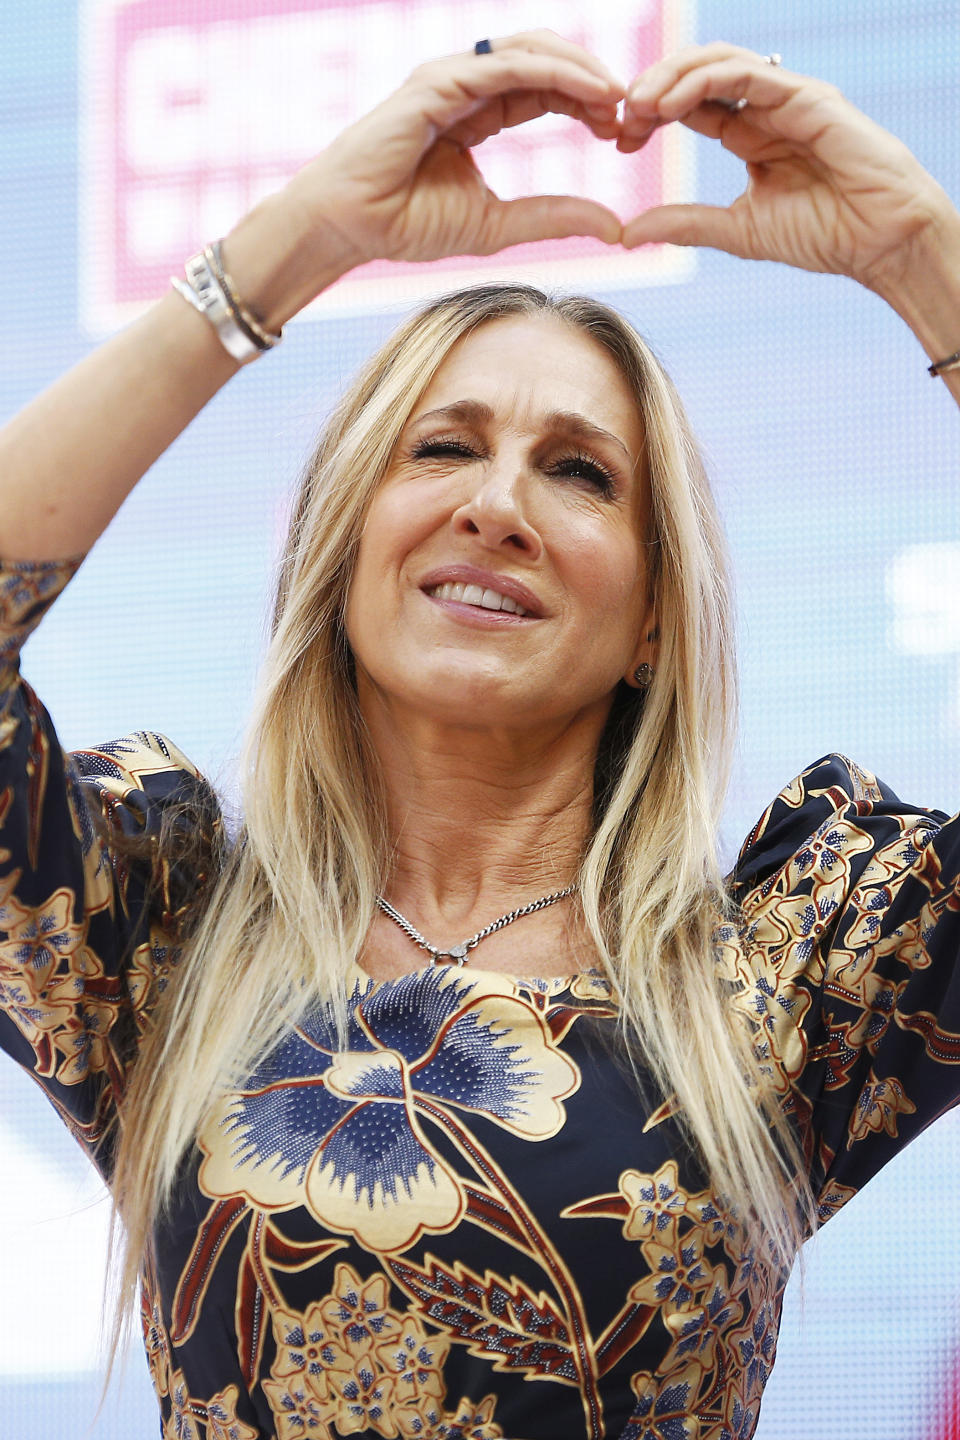 MELBOURNE, AUSTRALIA - OCTOBER 23: Sarah Jessica Parker gestures to fans at Highpoint Shopping Centre on October 23, 2019 in Melbourne, Australia. (Photo by Daniel Pockett/Getty Images)